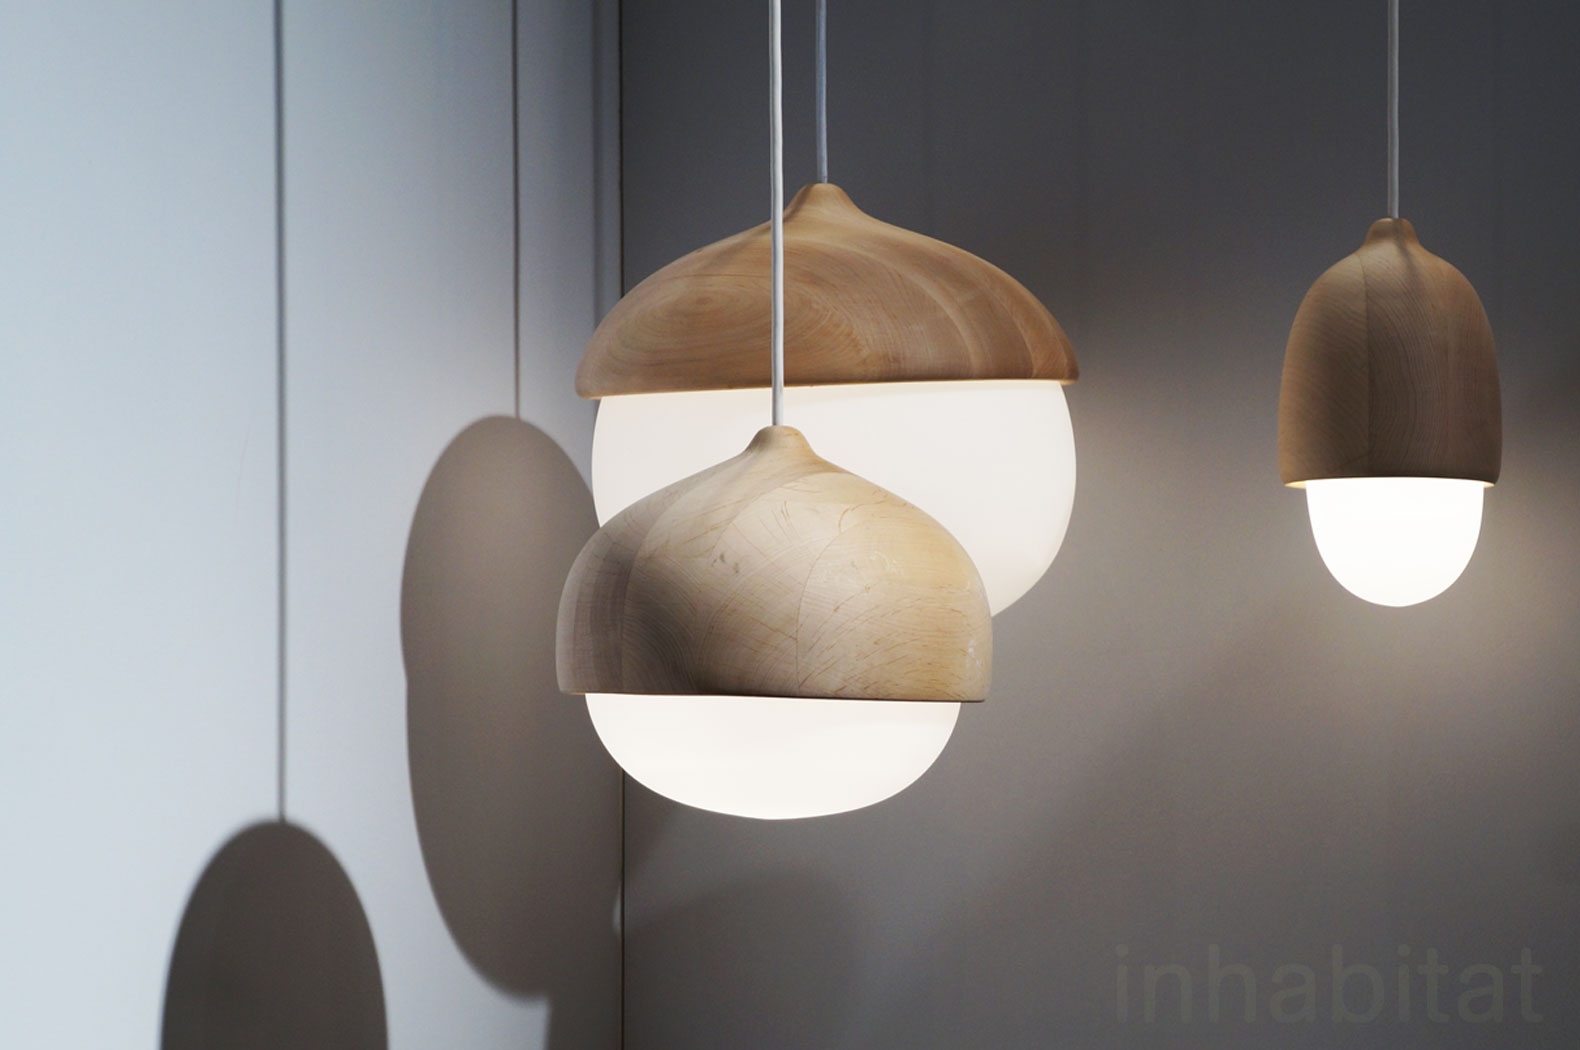 28 inspiring lighting designs from new york design week acorn lamps by mater designs inhabitat. Black Bedroom Furniture Sets. Home Design Ideas